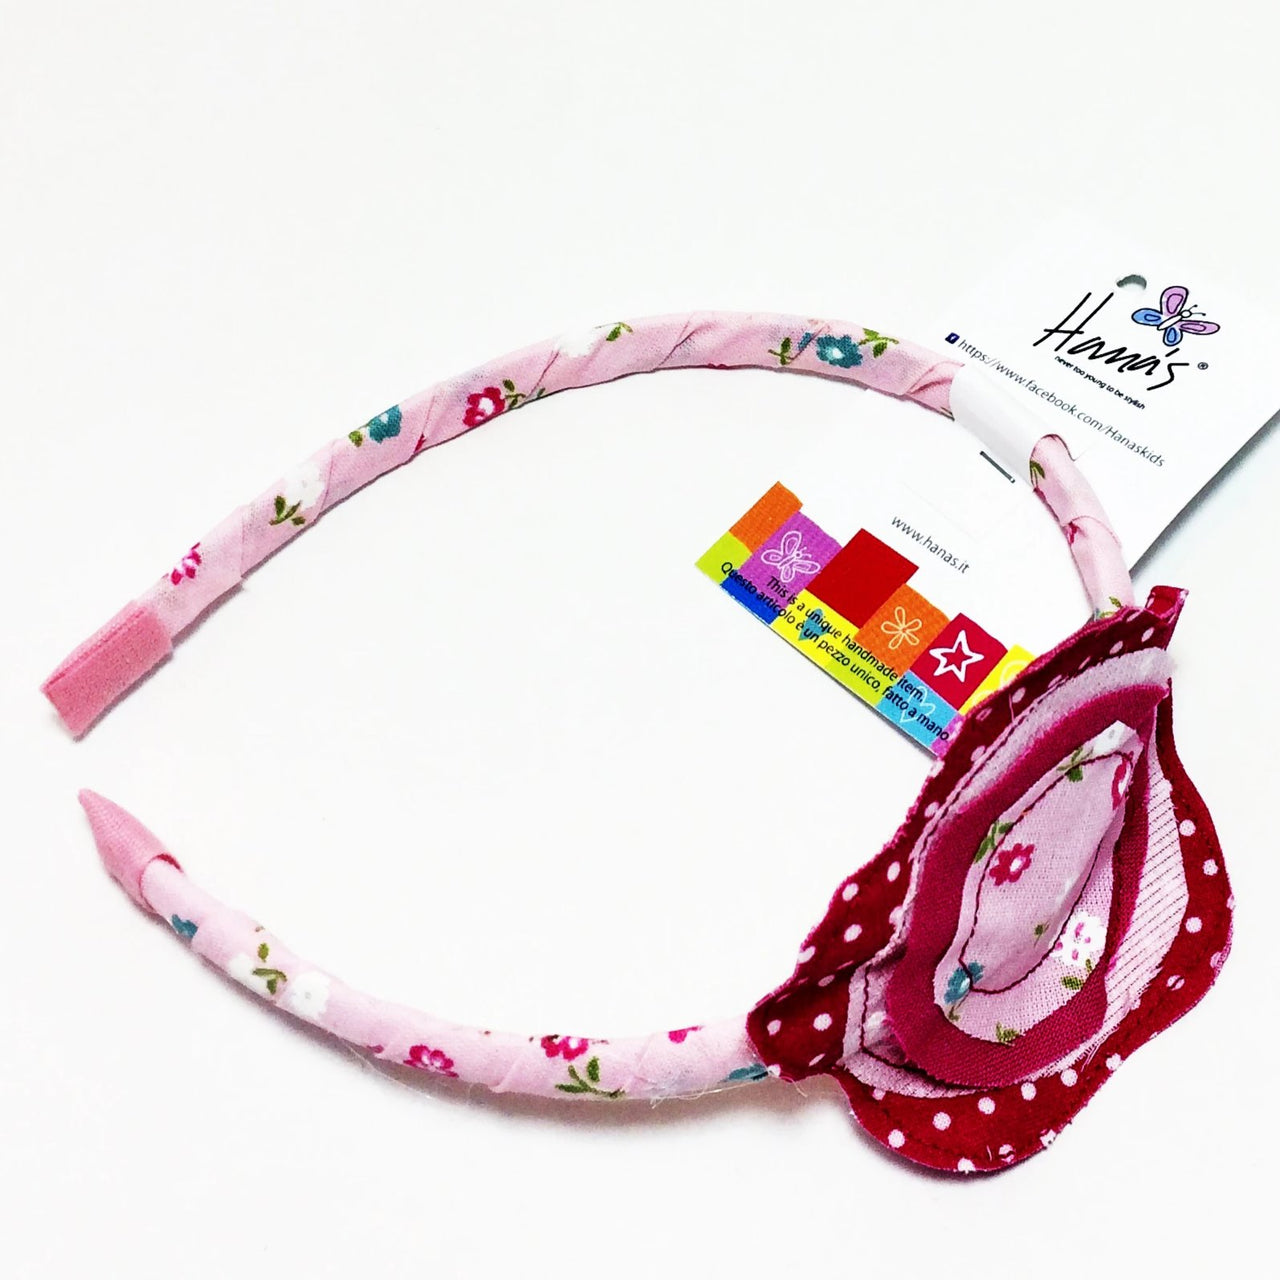 Our Pink Flower Headband is finished with 100% cotton fabric, decorated with a hand sewn little flower. This headband is perfect for girls of all ages and it is a lovely piece to have!